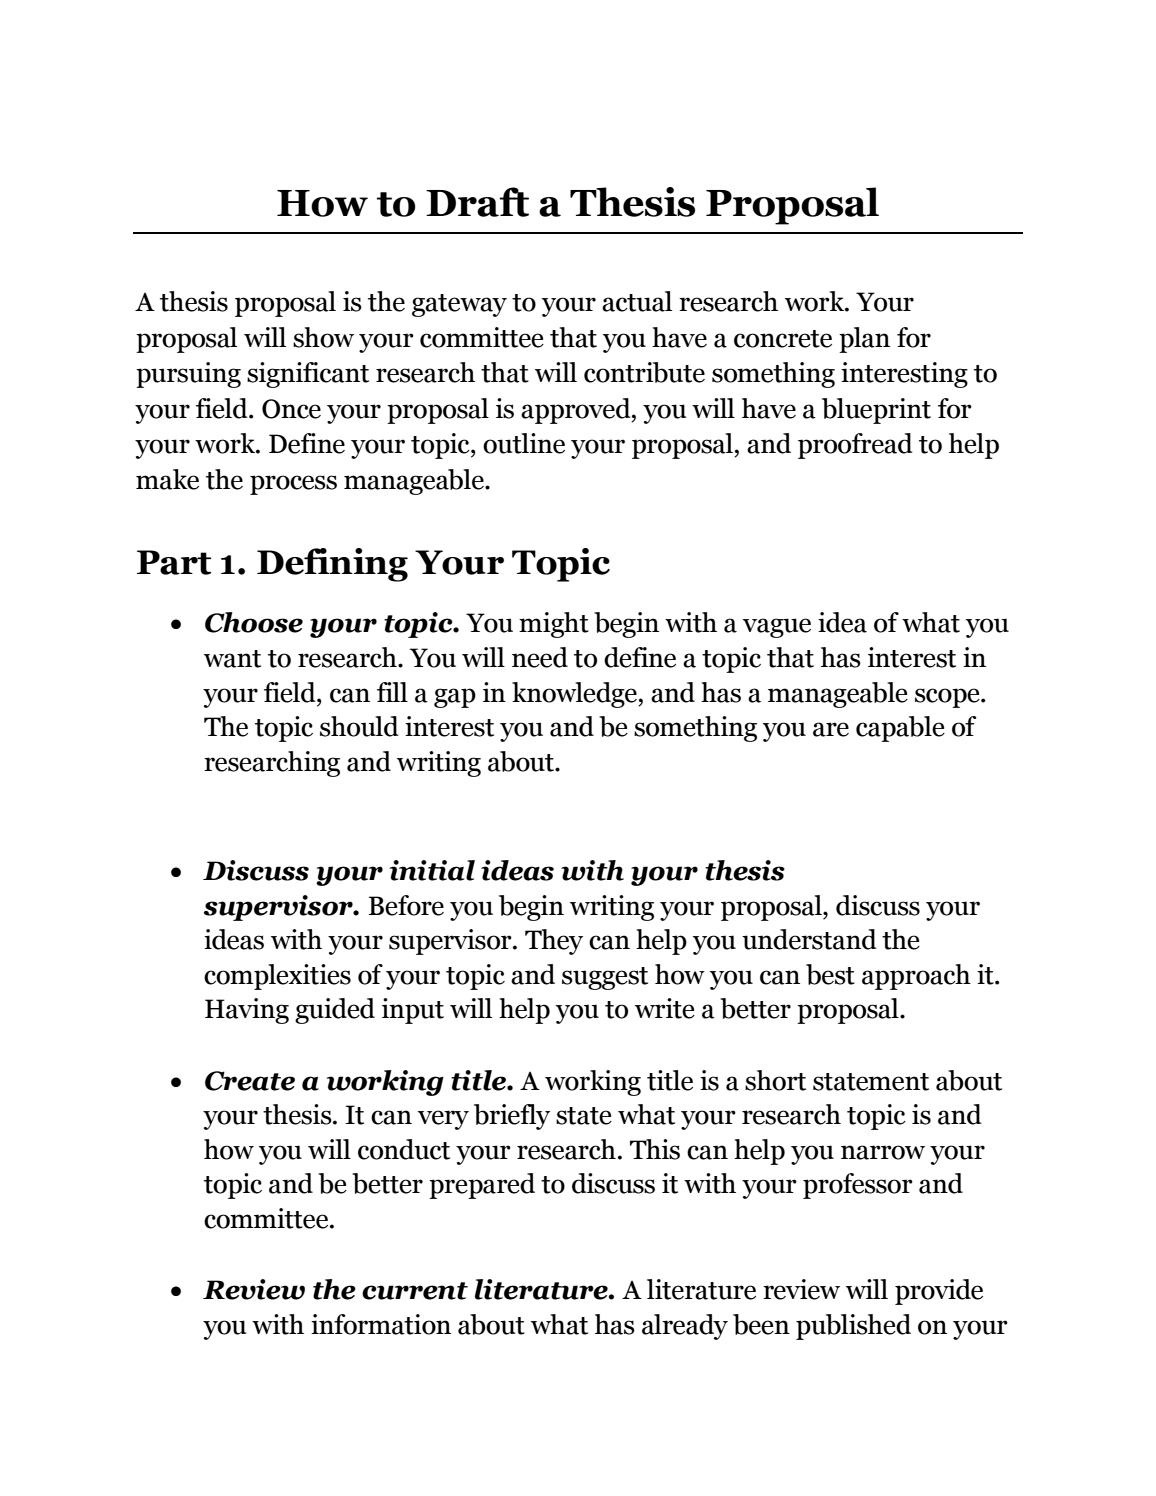 Write popular thesis proposal book ratings site